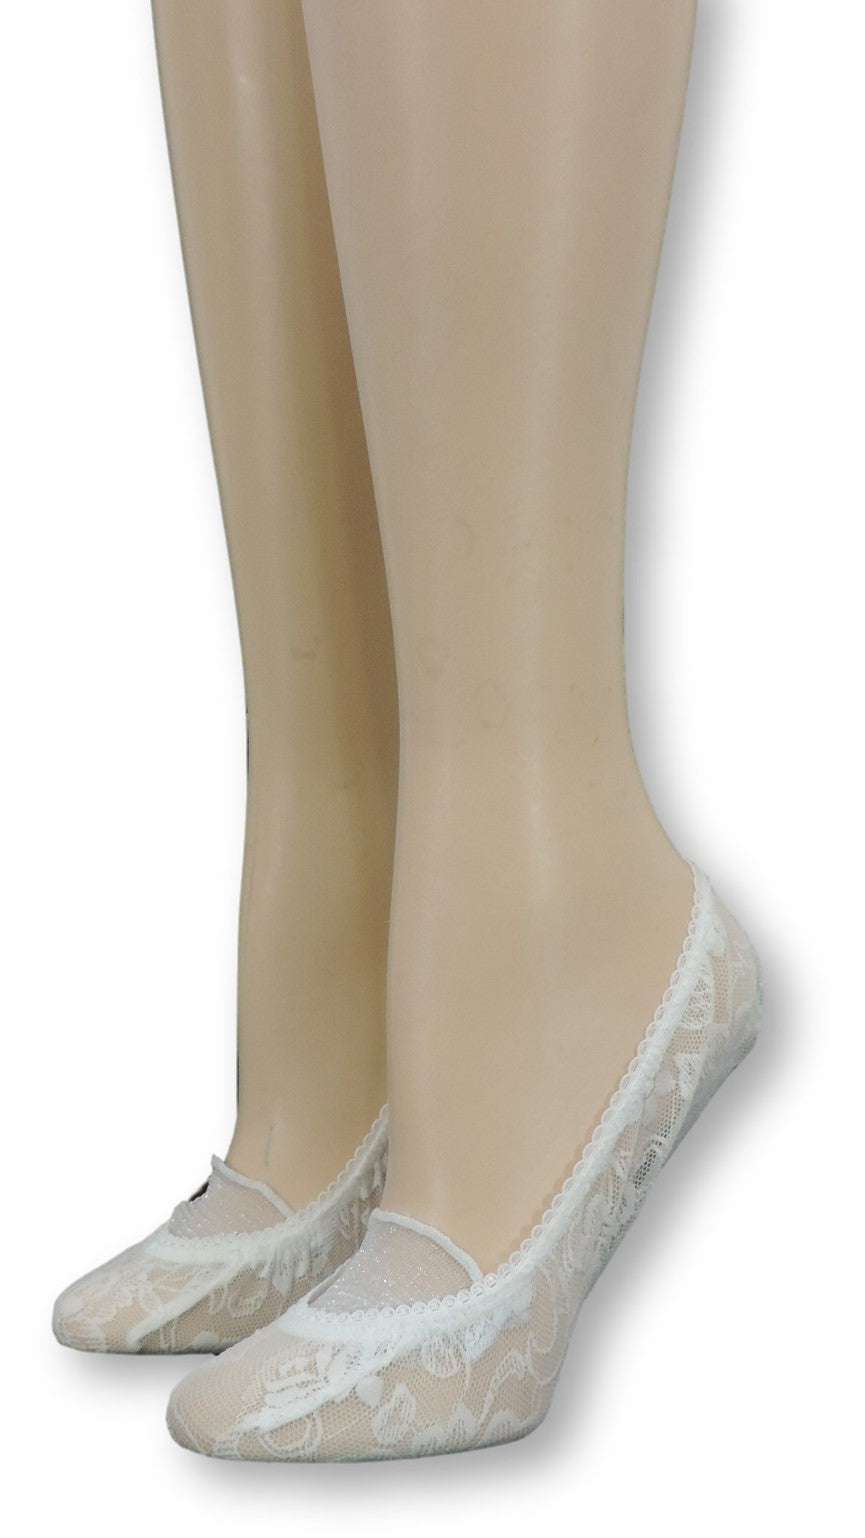 Chiffon Ankle Mesh Socks Closed Lace - Global Trendz Fashion®